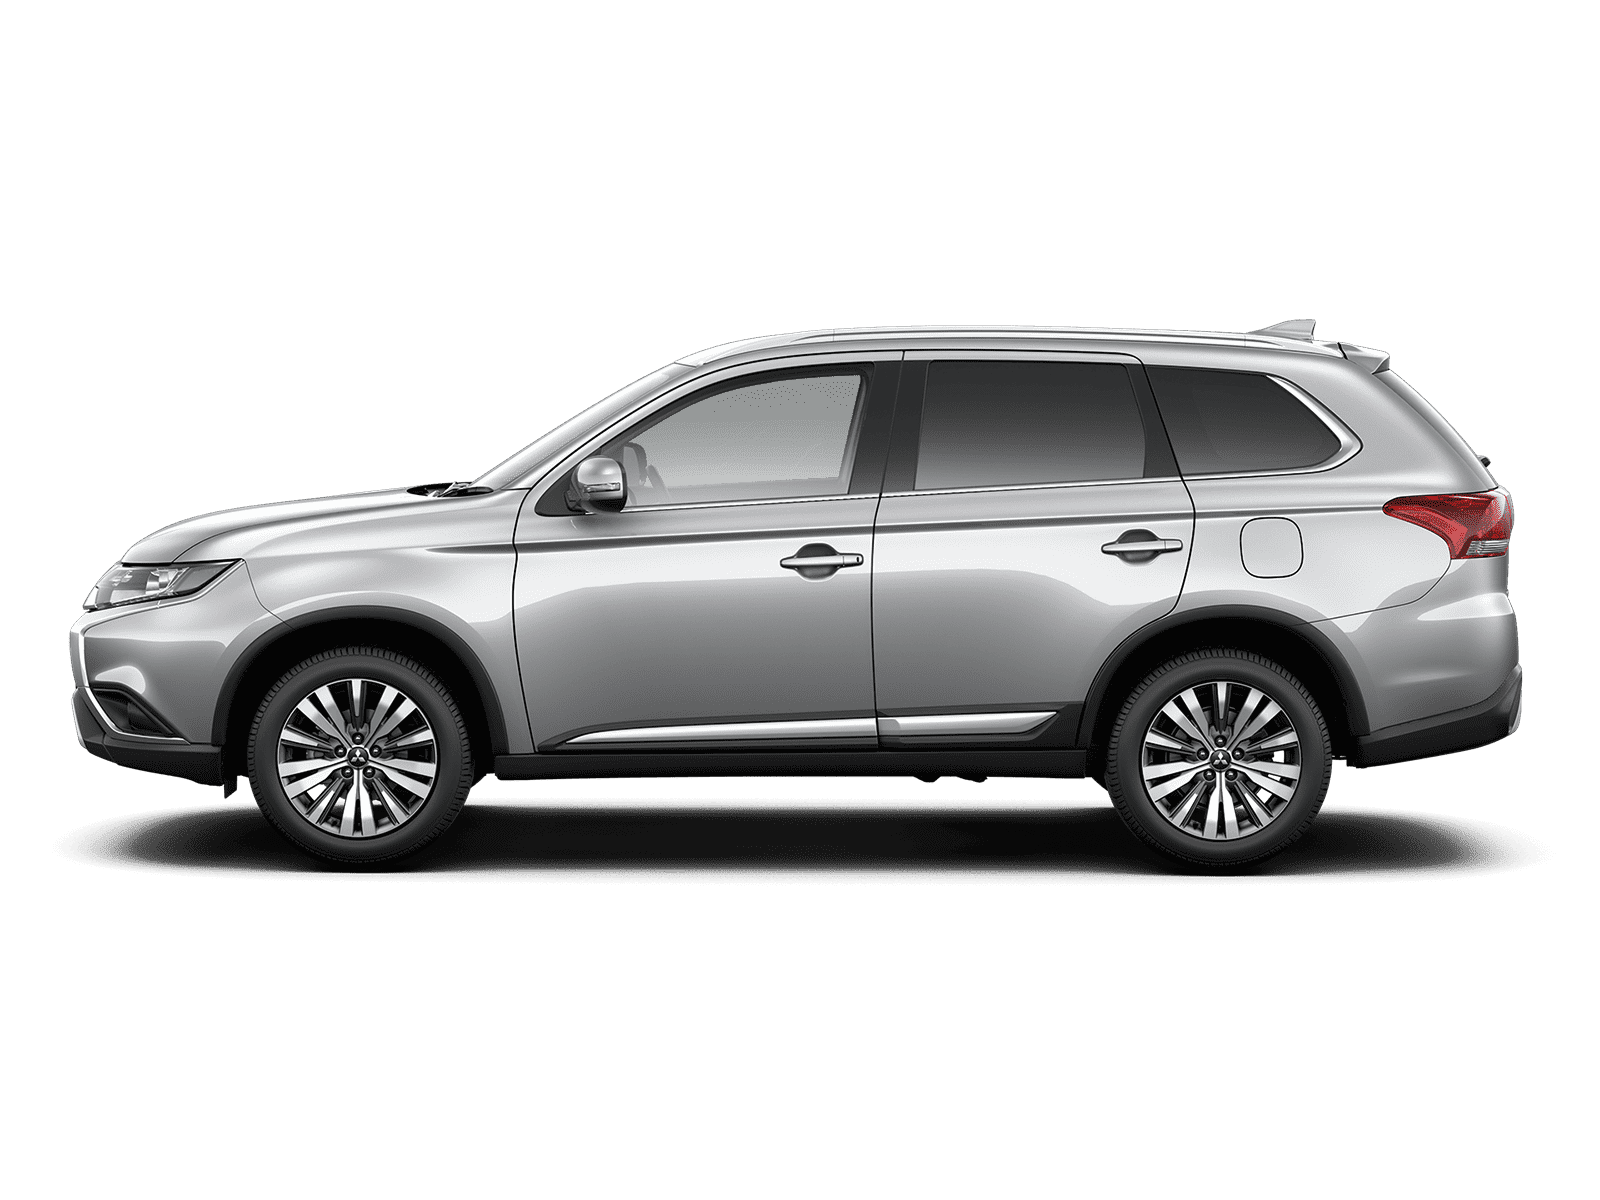 Mitsubishi Outlander PHEV Automatic Hybrid Sterling Silver